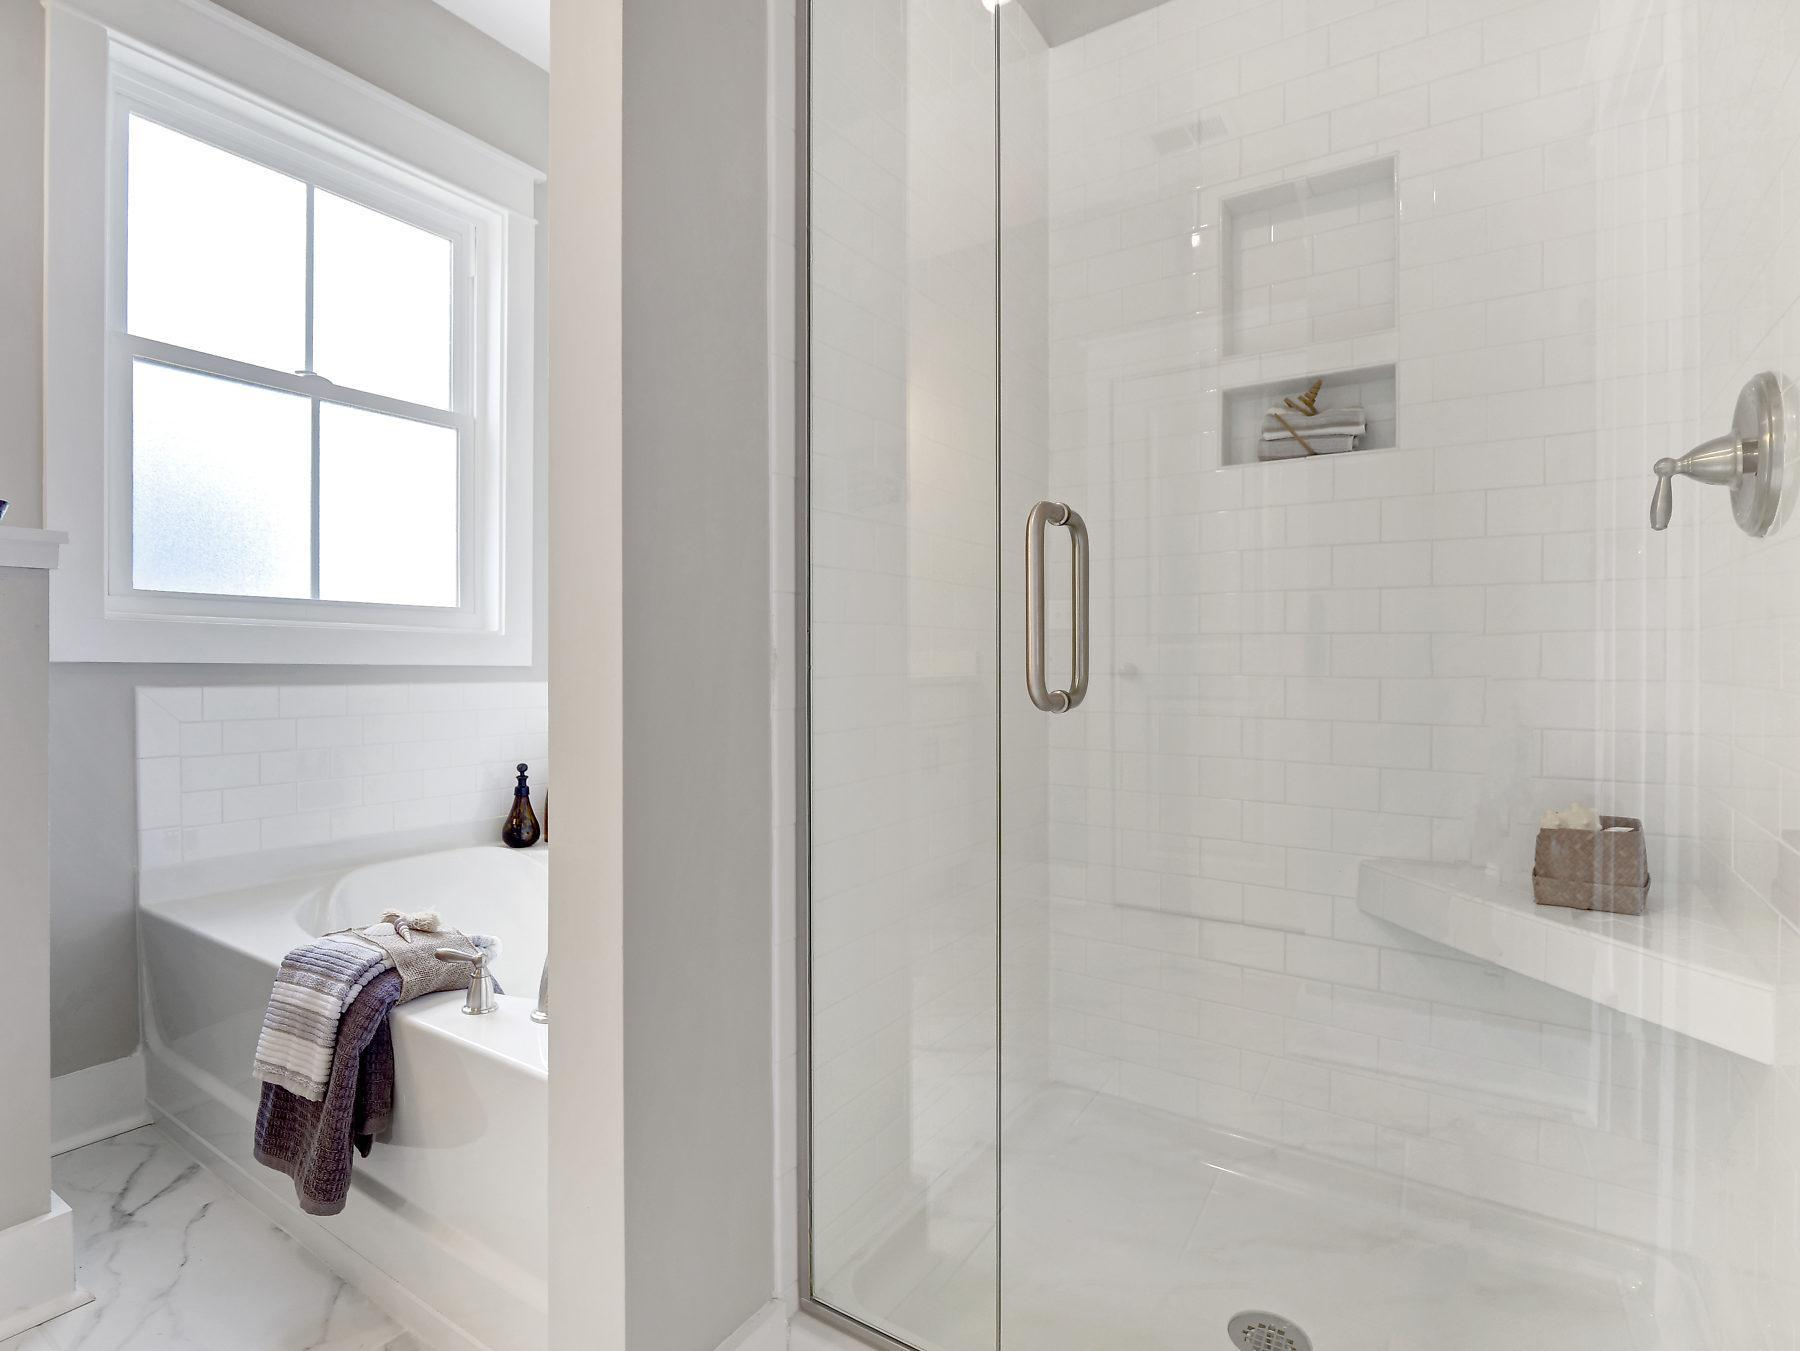 Bathroom featured in The Ashley River II By Village Park Homes in Hilton Head, SC